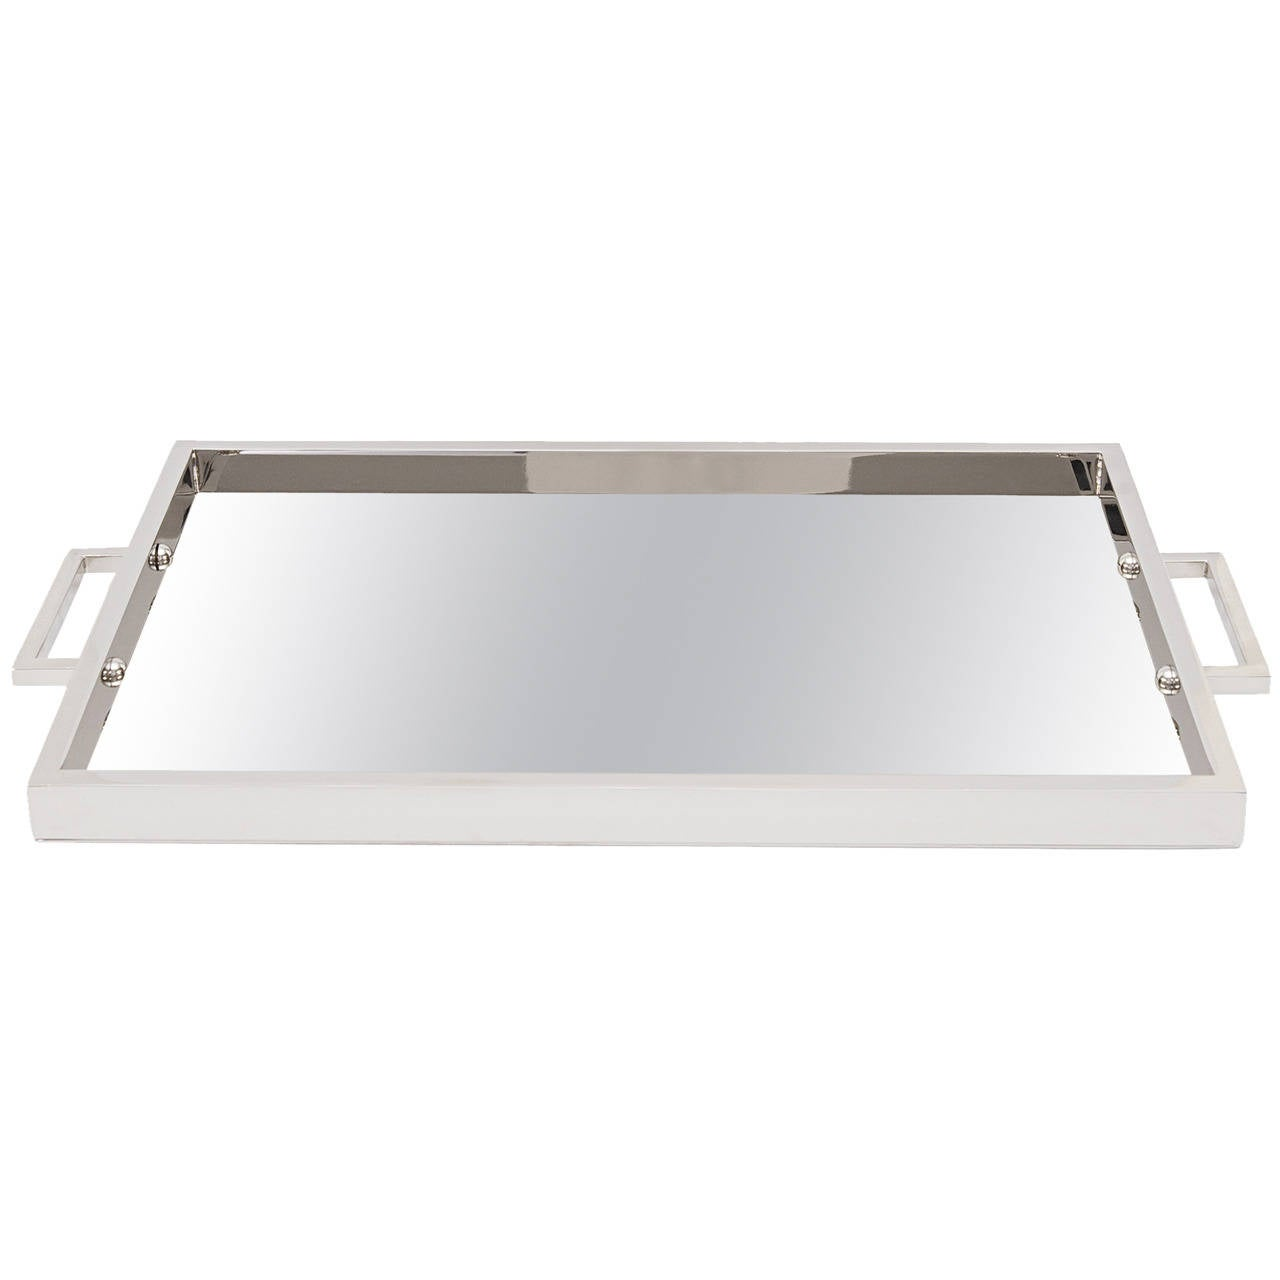 Mies Nickel Tray by Michael Dawkins